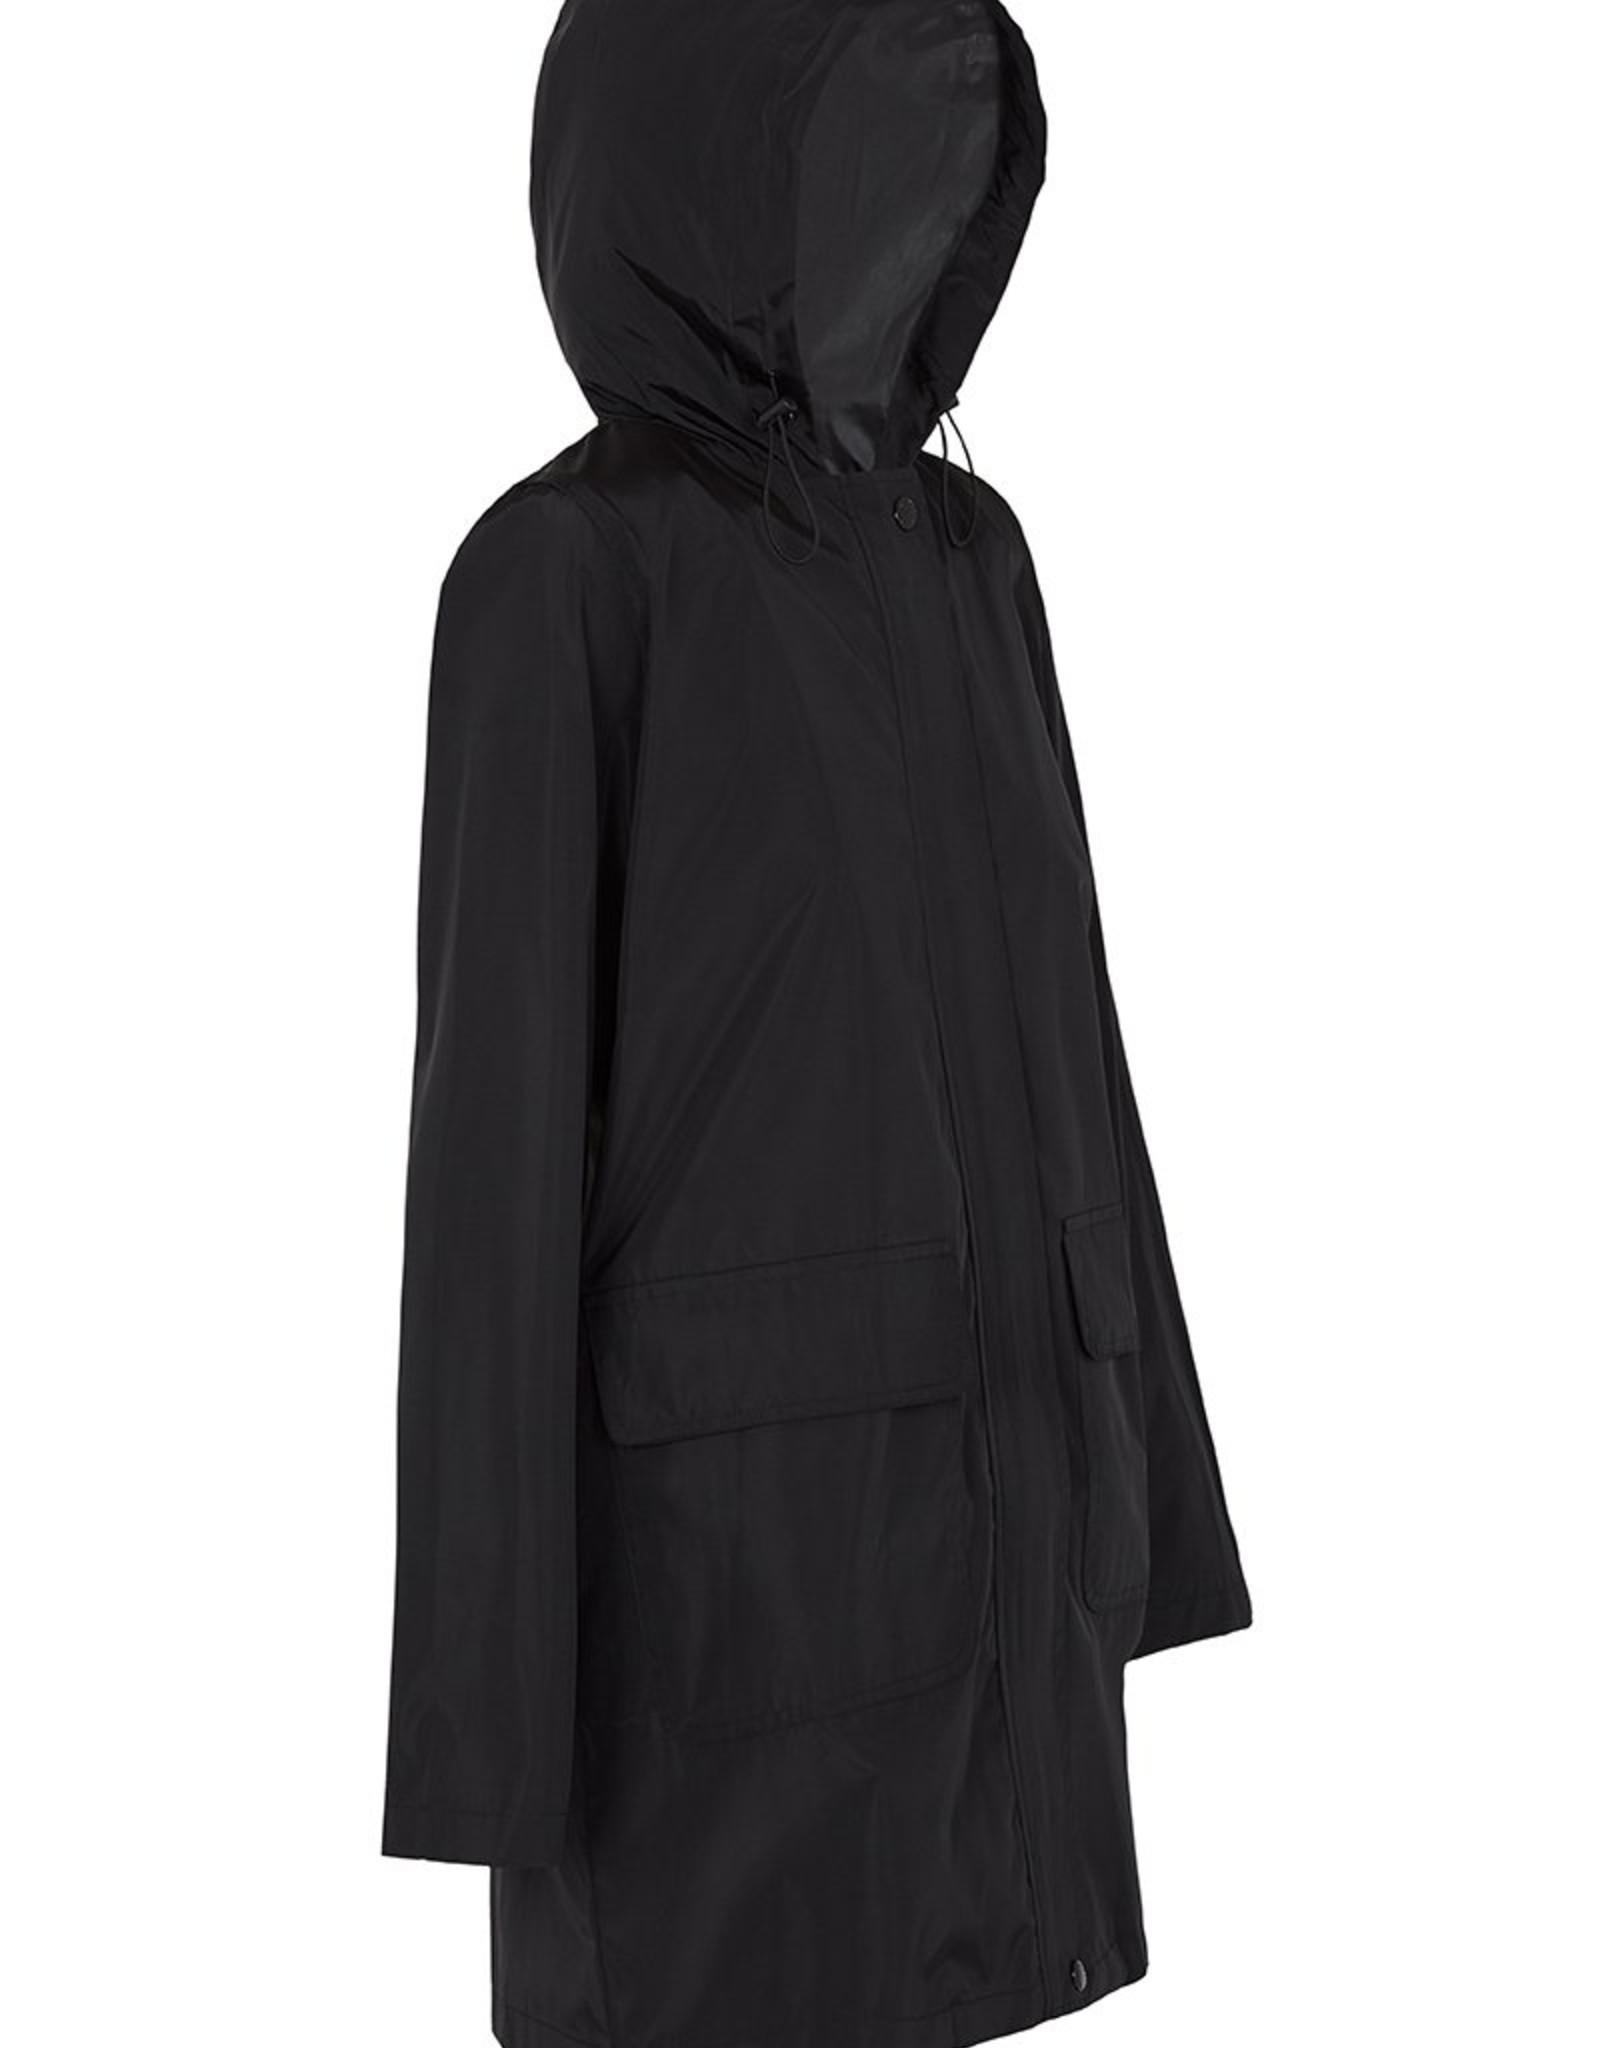 PAQME 3/4 JACKET ANYDAY RAINCOAT BLACK